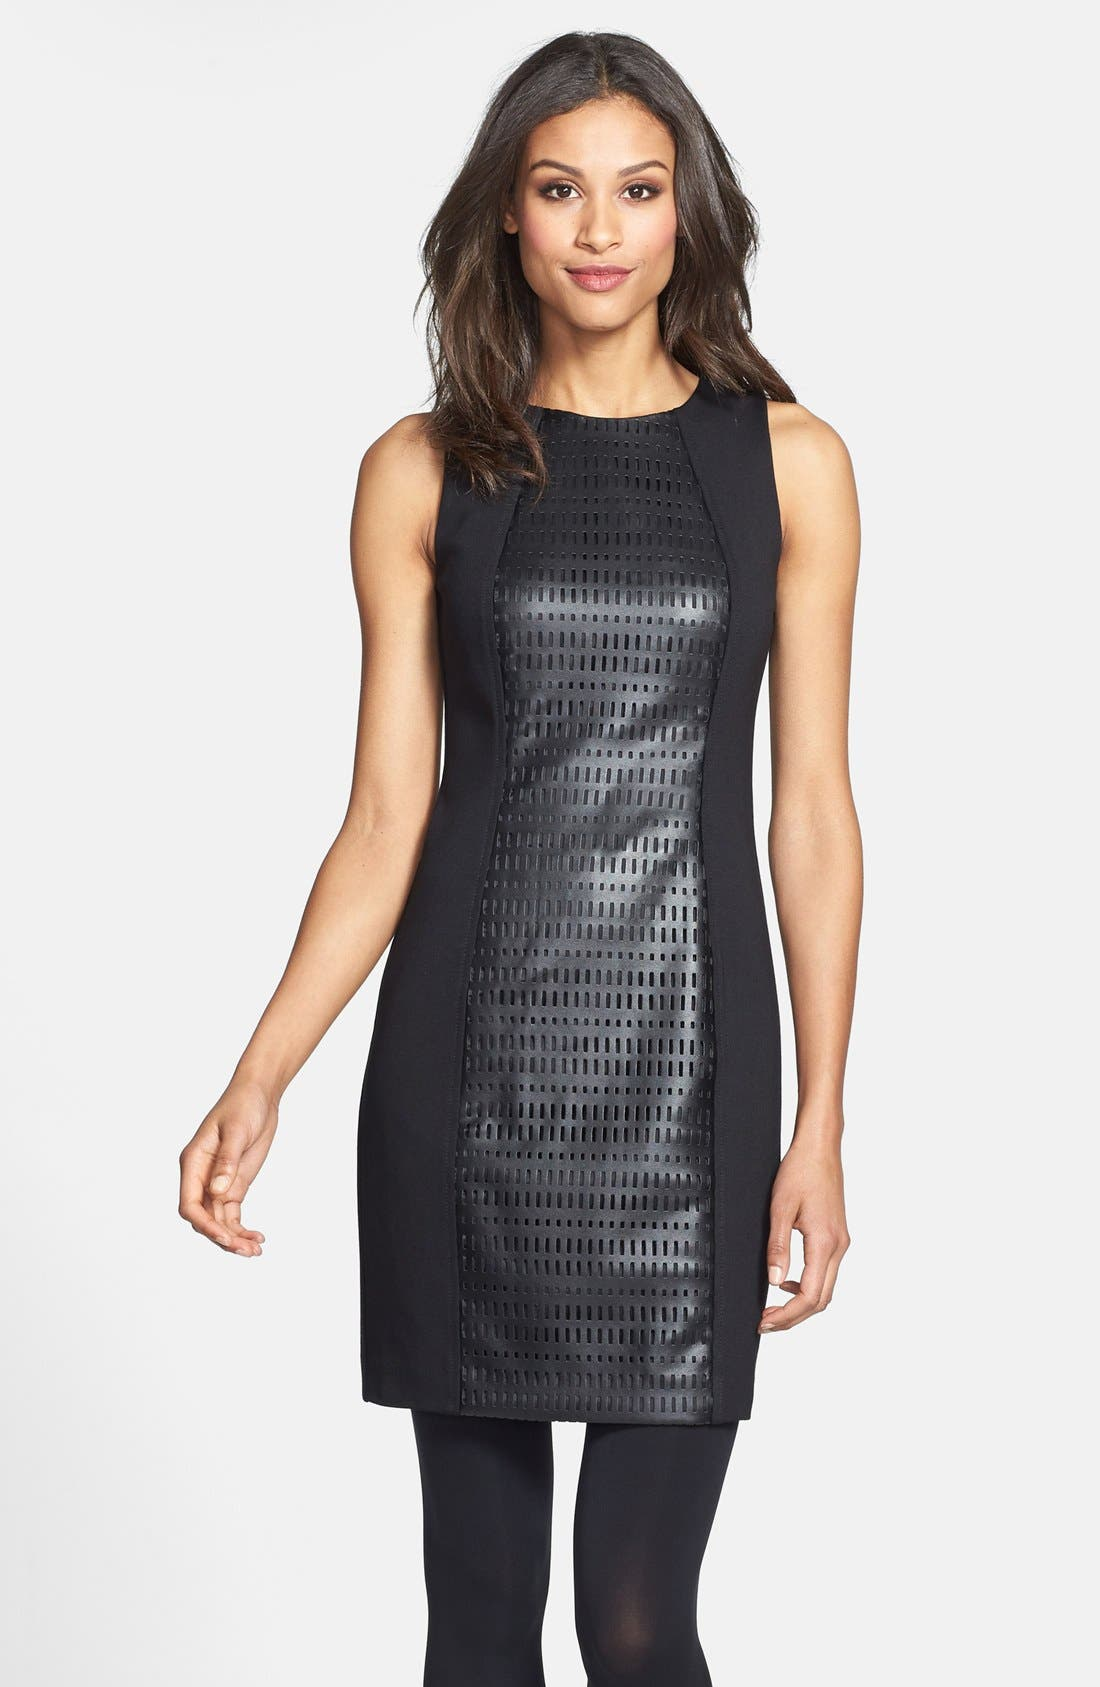 Alternate Image 1 Selected - Trina Turk Laser Cut Faux Leather & Ponte Sheath Dress